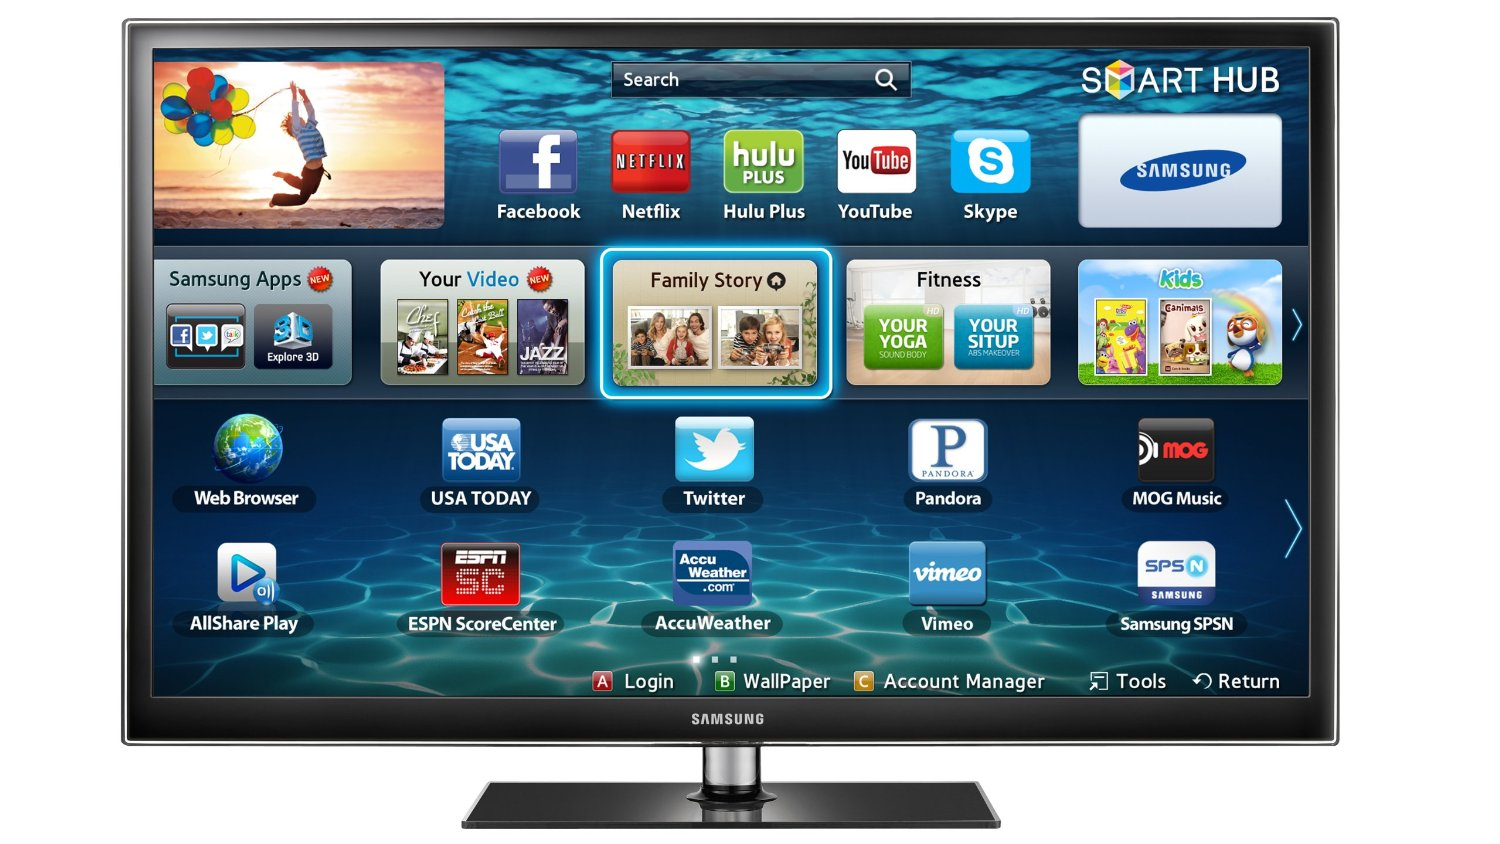 Samsung Pn60e550 60 Inch Hdtvs Unbiased Lcd Tv Reviews Prices